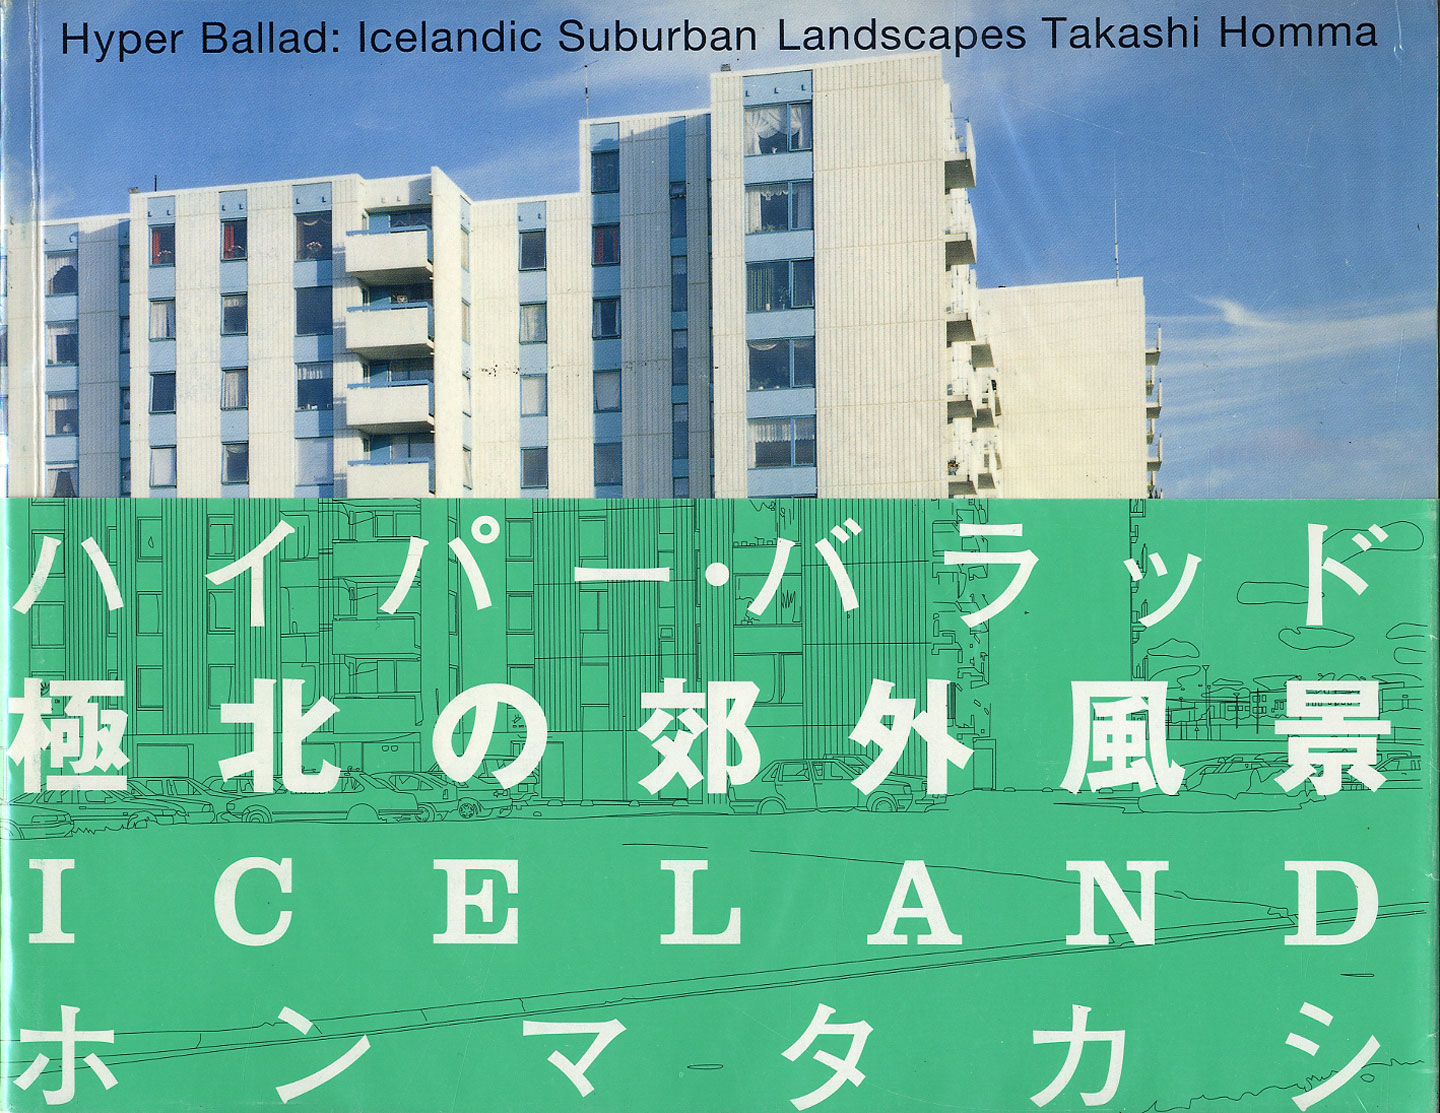 Takashi Homma: Hyper Ballad: Icelandic Suburban Landscapes (with rare obi and announcement poster) [SIGNED]